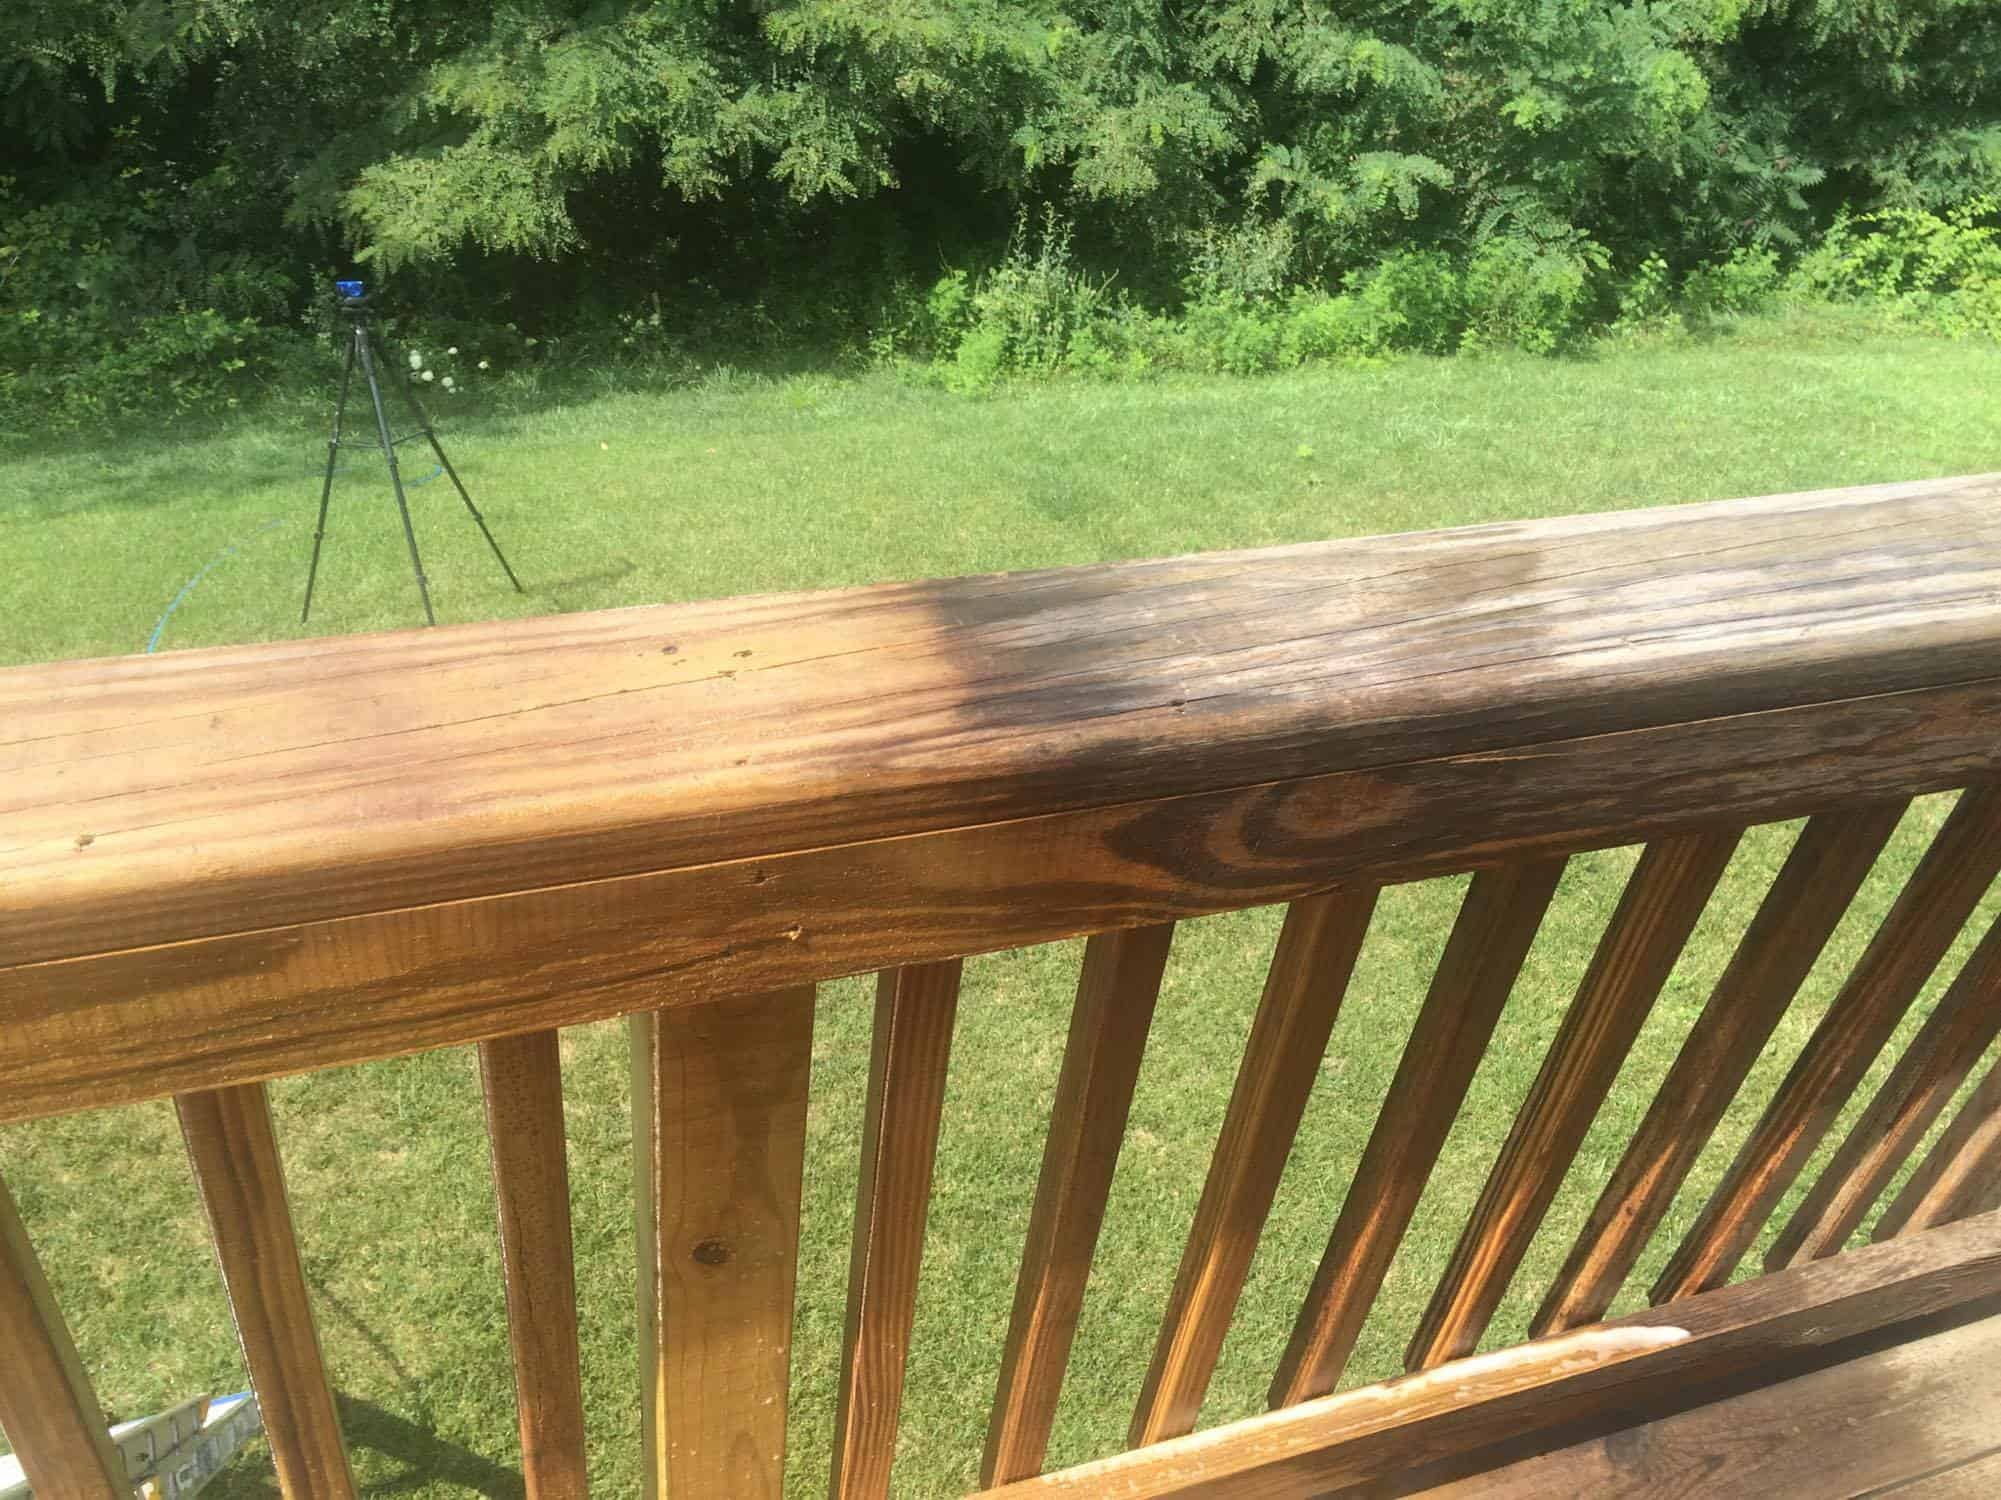 Deck cleaning by Complete Power Wash in Hagerstown, MD